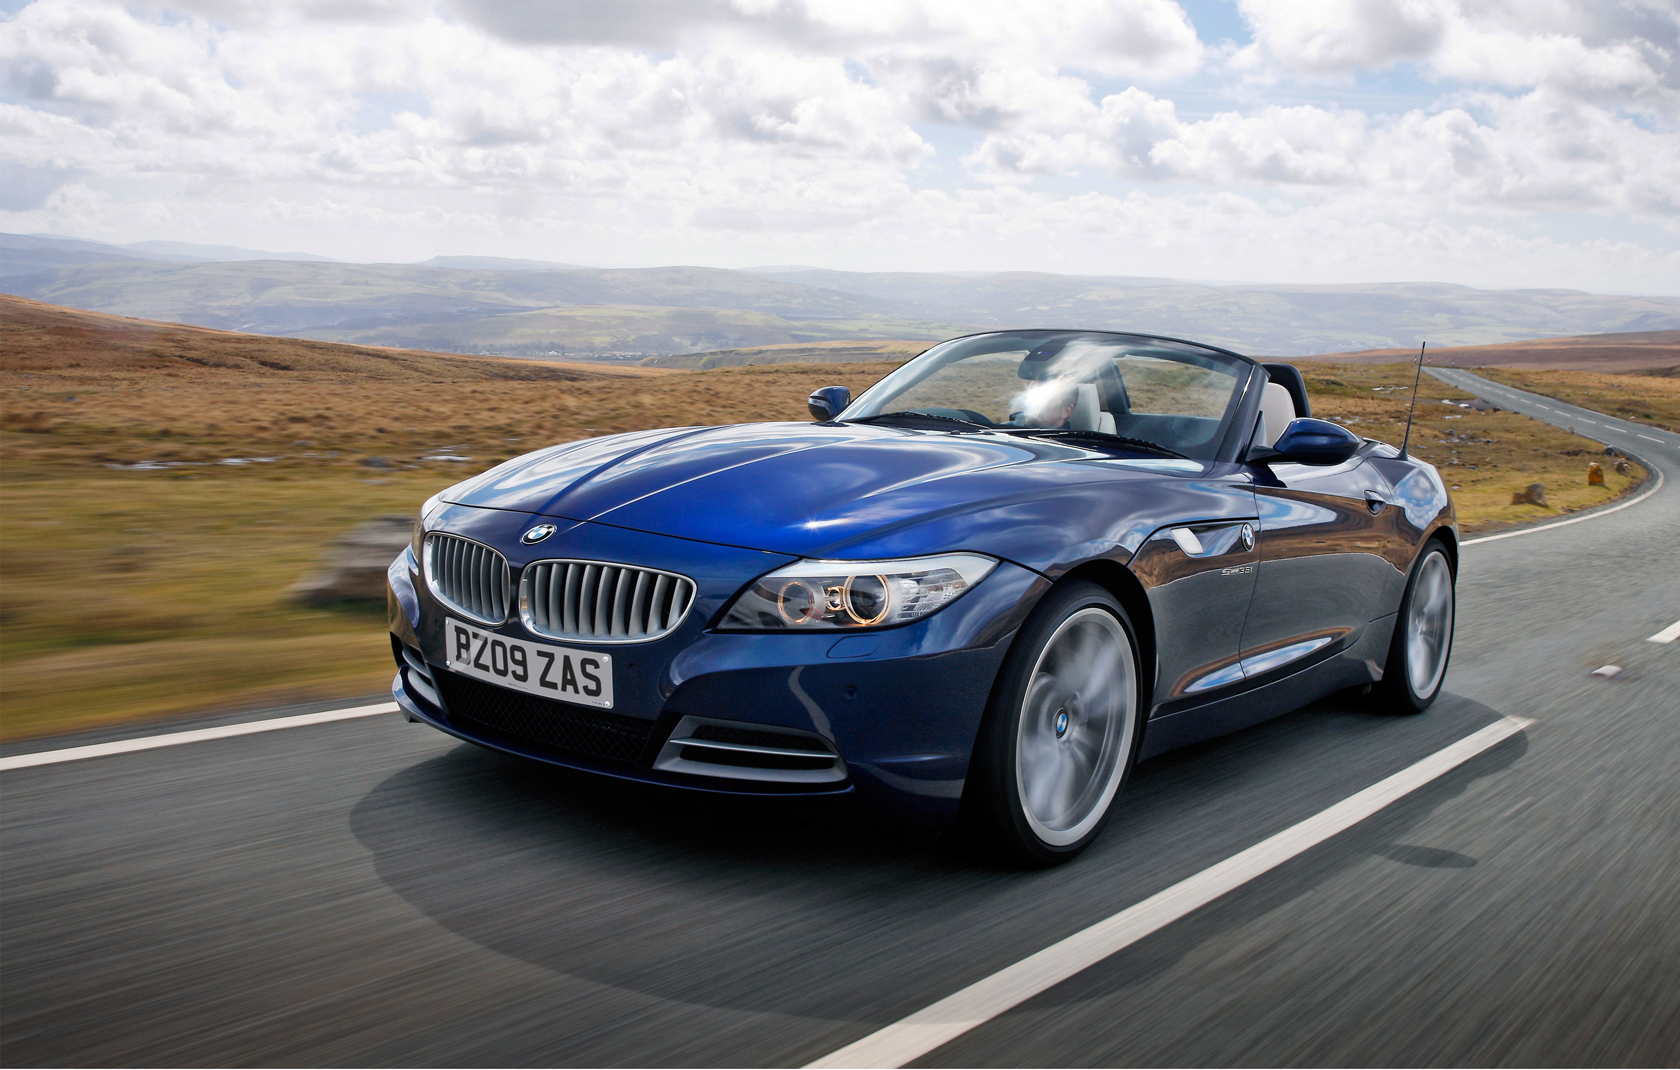 New Set Of Bmw Z4 E89 Wallpapers In Deep Sea Blue